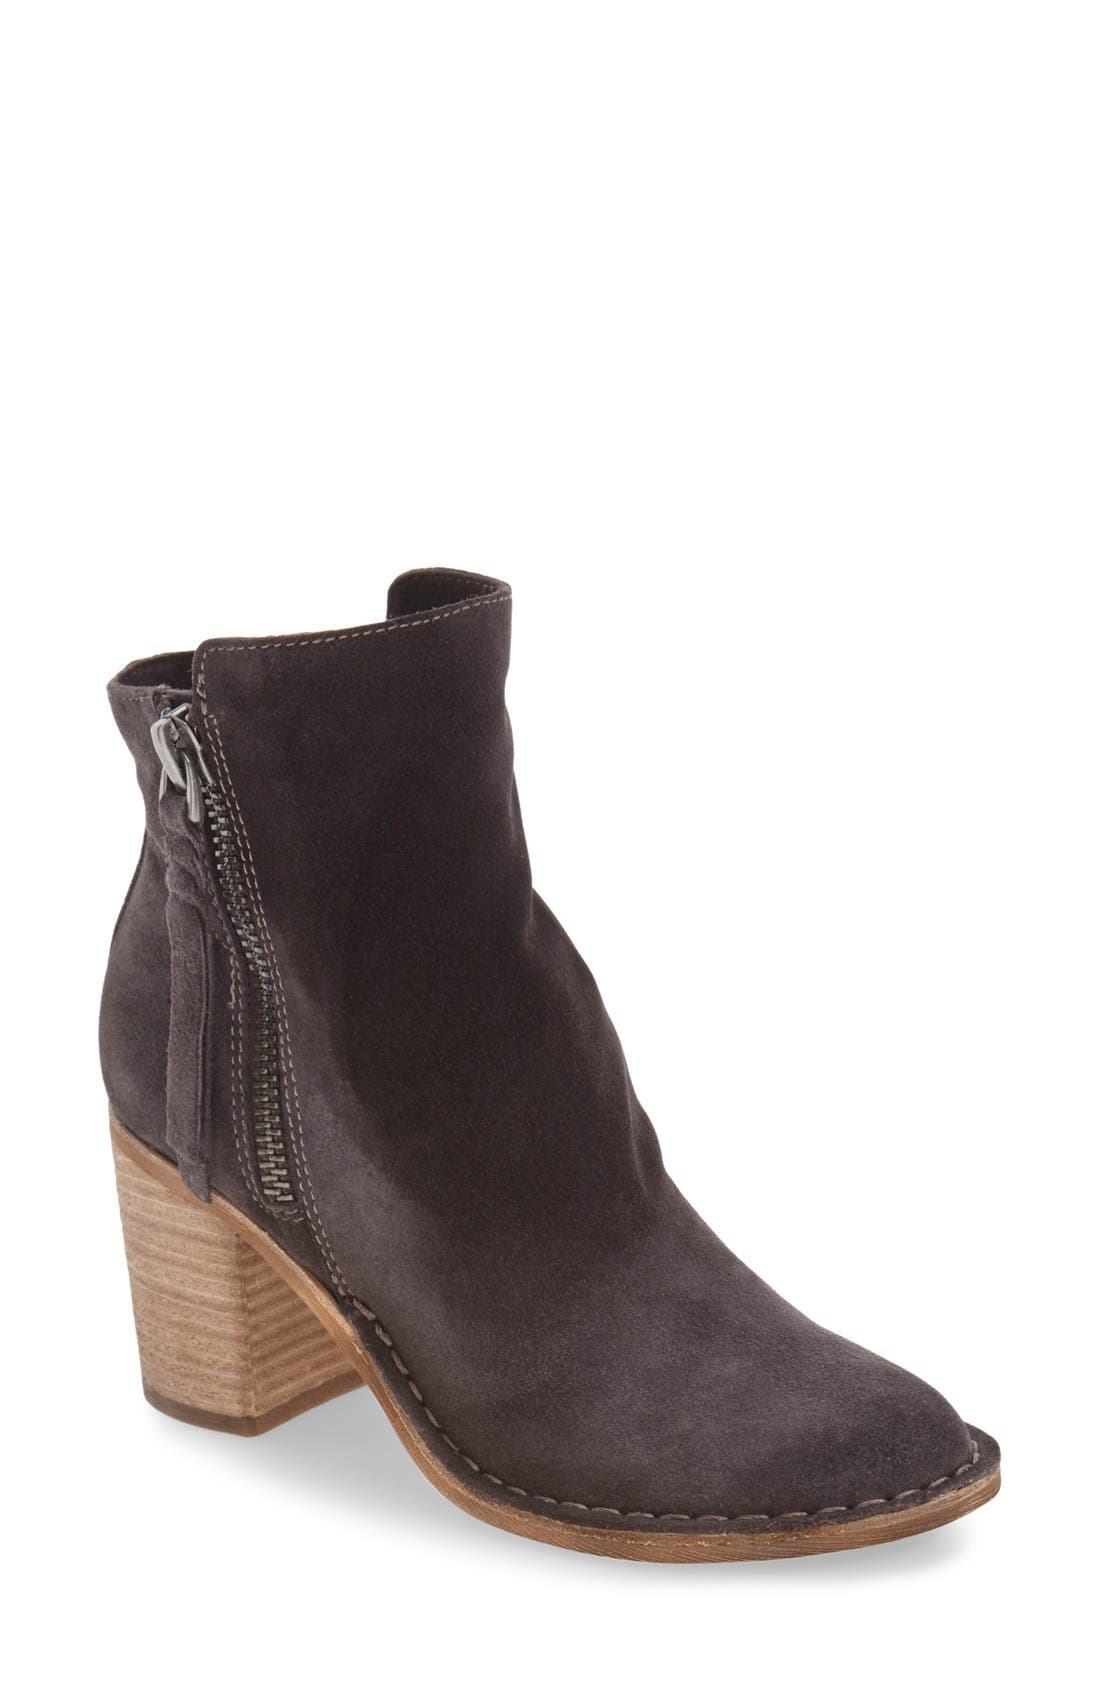 'Lana' Block Heel Bootie,                         Main,                         color, Anthracite Suede